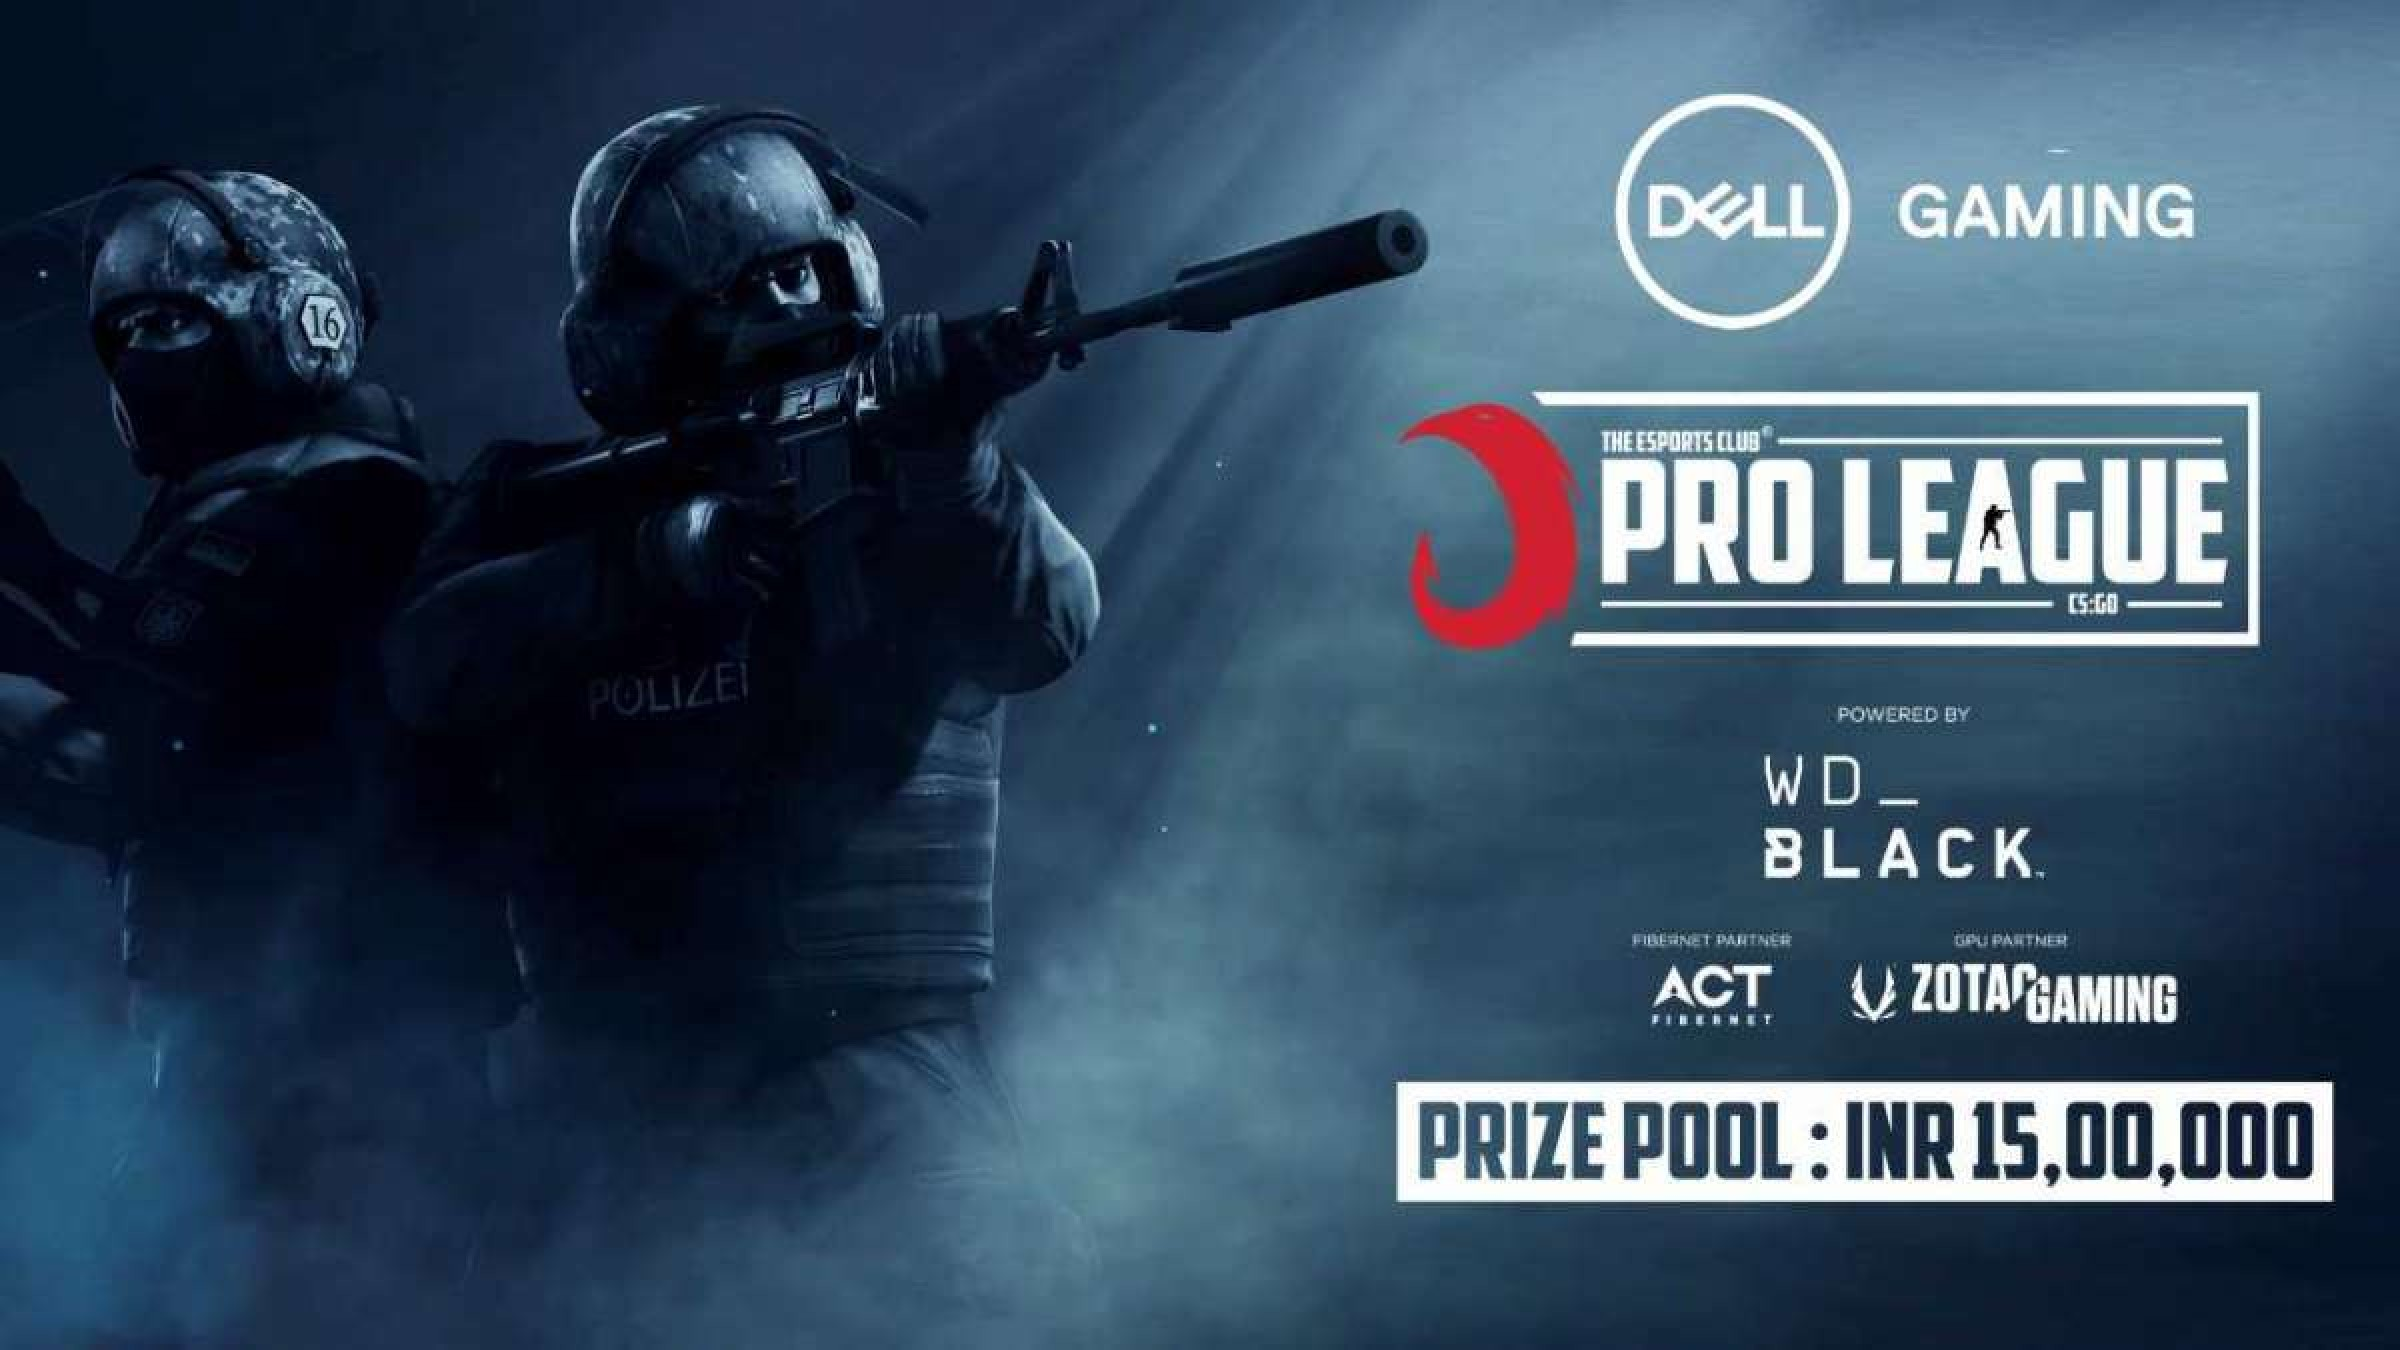 Dell Gaming TEC Pro League to Commence from October 2020